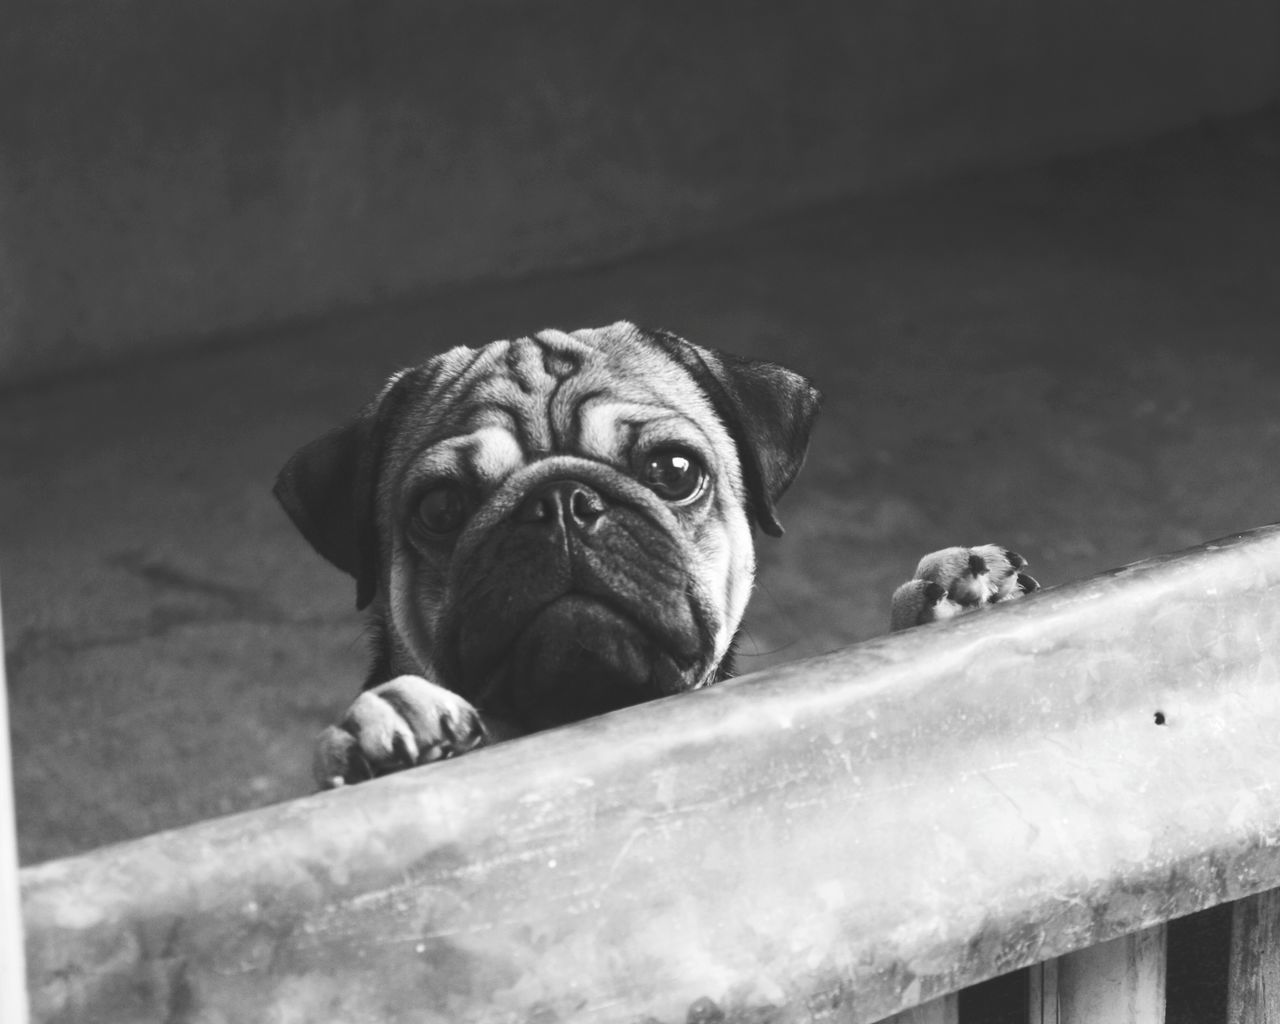 Hey!human, get me out of here. 😁😘🐕 Dog Small Animal Pug Pets One Animal No People Close-up Animal Themes Outdoors Day Cellphonephotography EyeEmNewHere Pug Life  Puglove  Puglover Pugofmylife Pugsnotdrugs  Dog Love Dogs Of EyeEm Dogslife